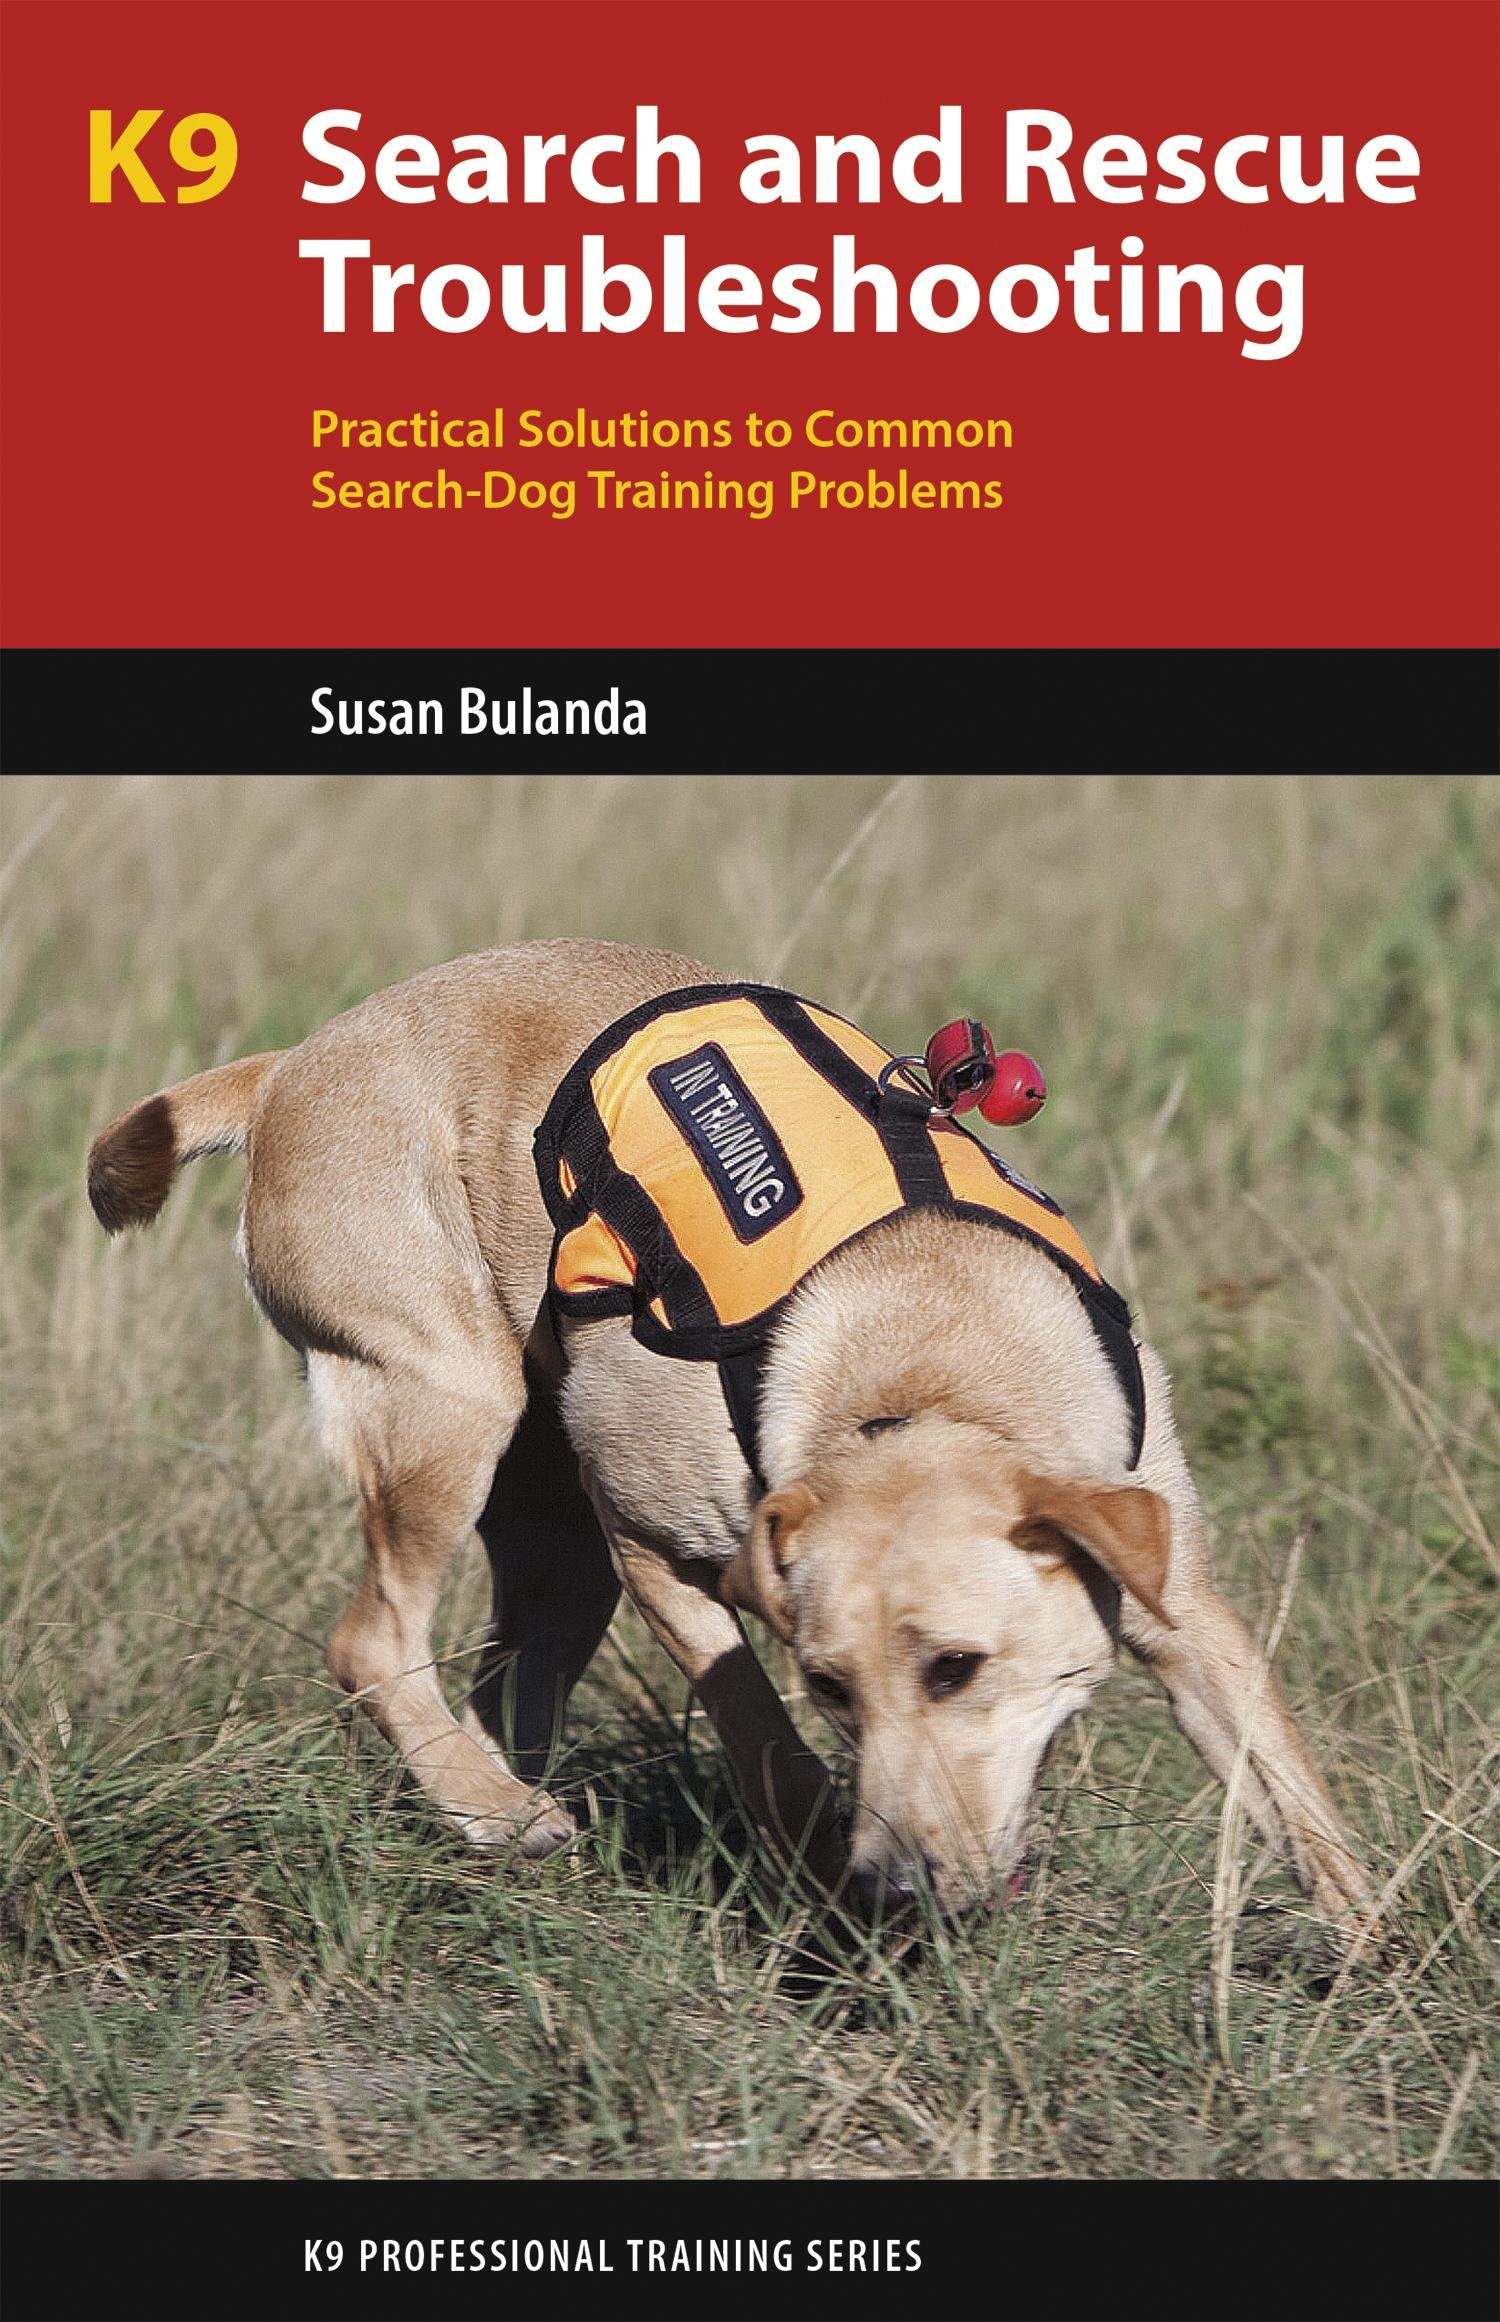 K9 Search And Rescue Troubleshooting  Practical Solutions To Common Search Dog Training Problems  K9 Professional Training Series   English Edition